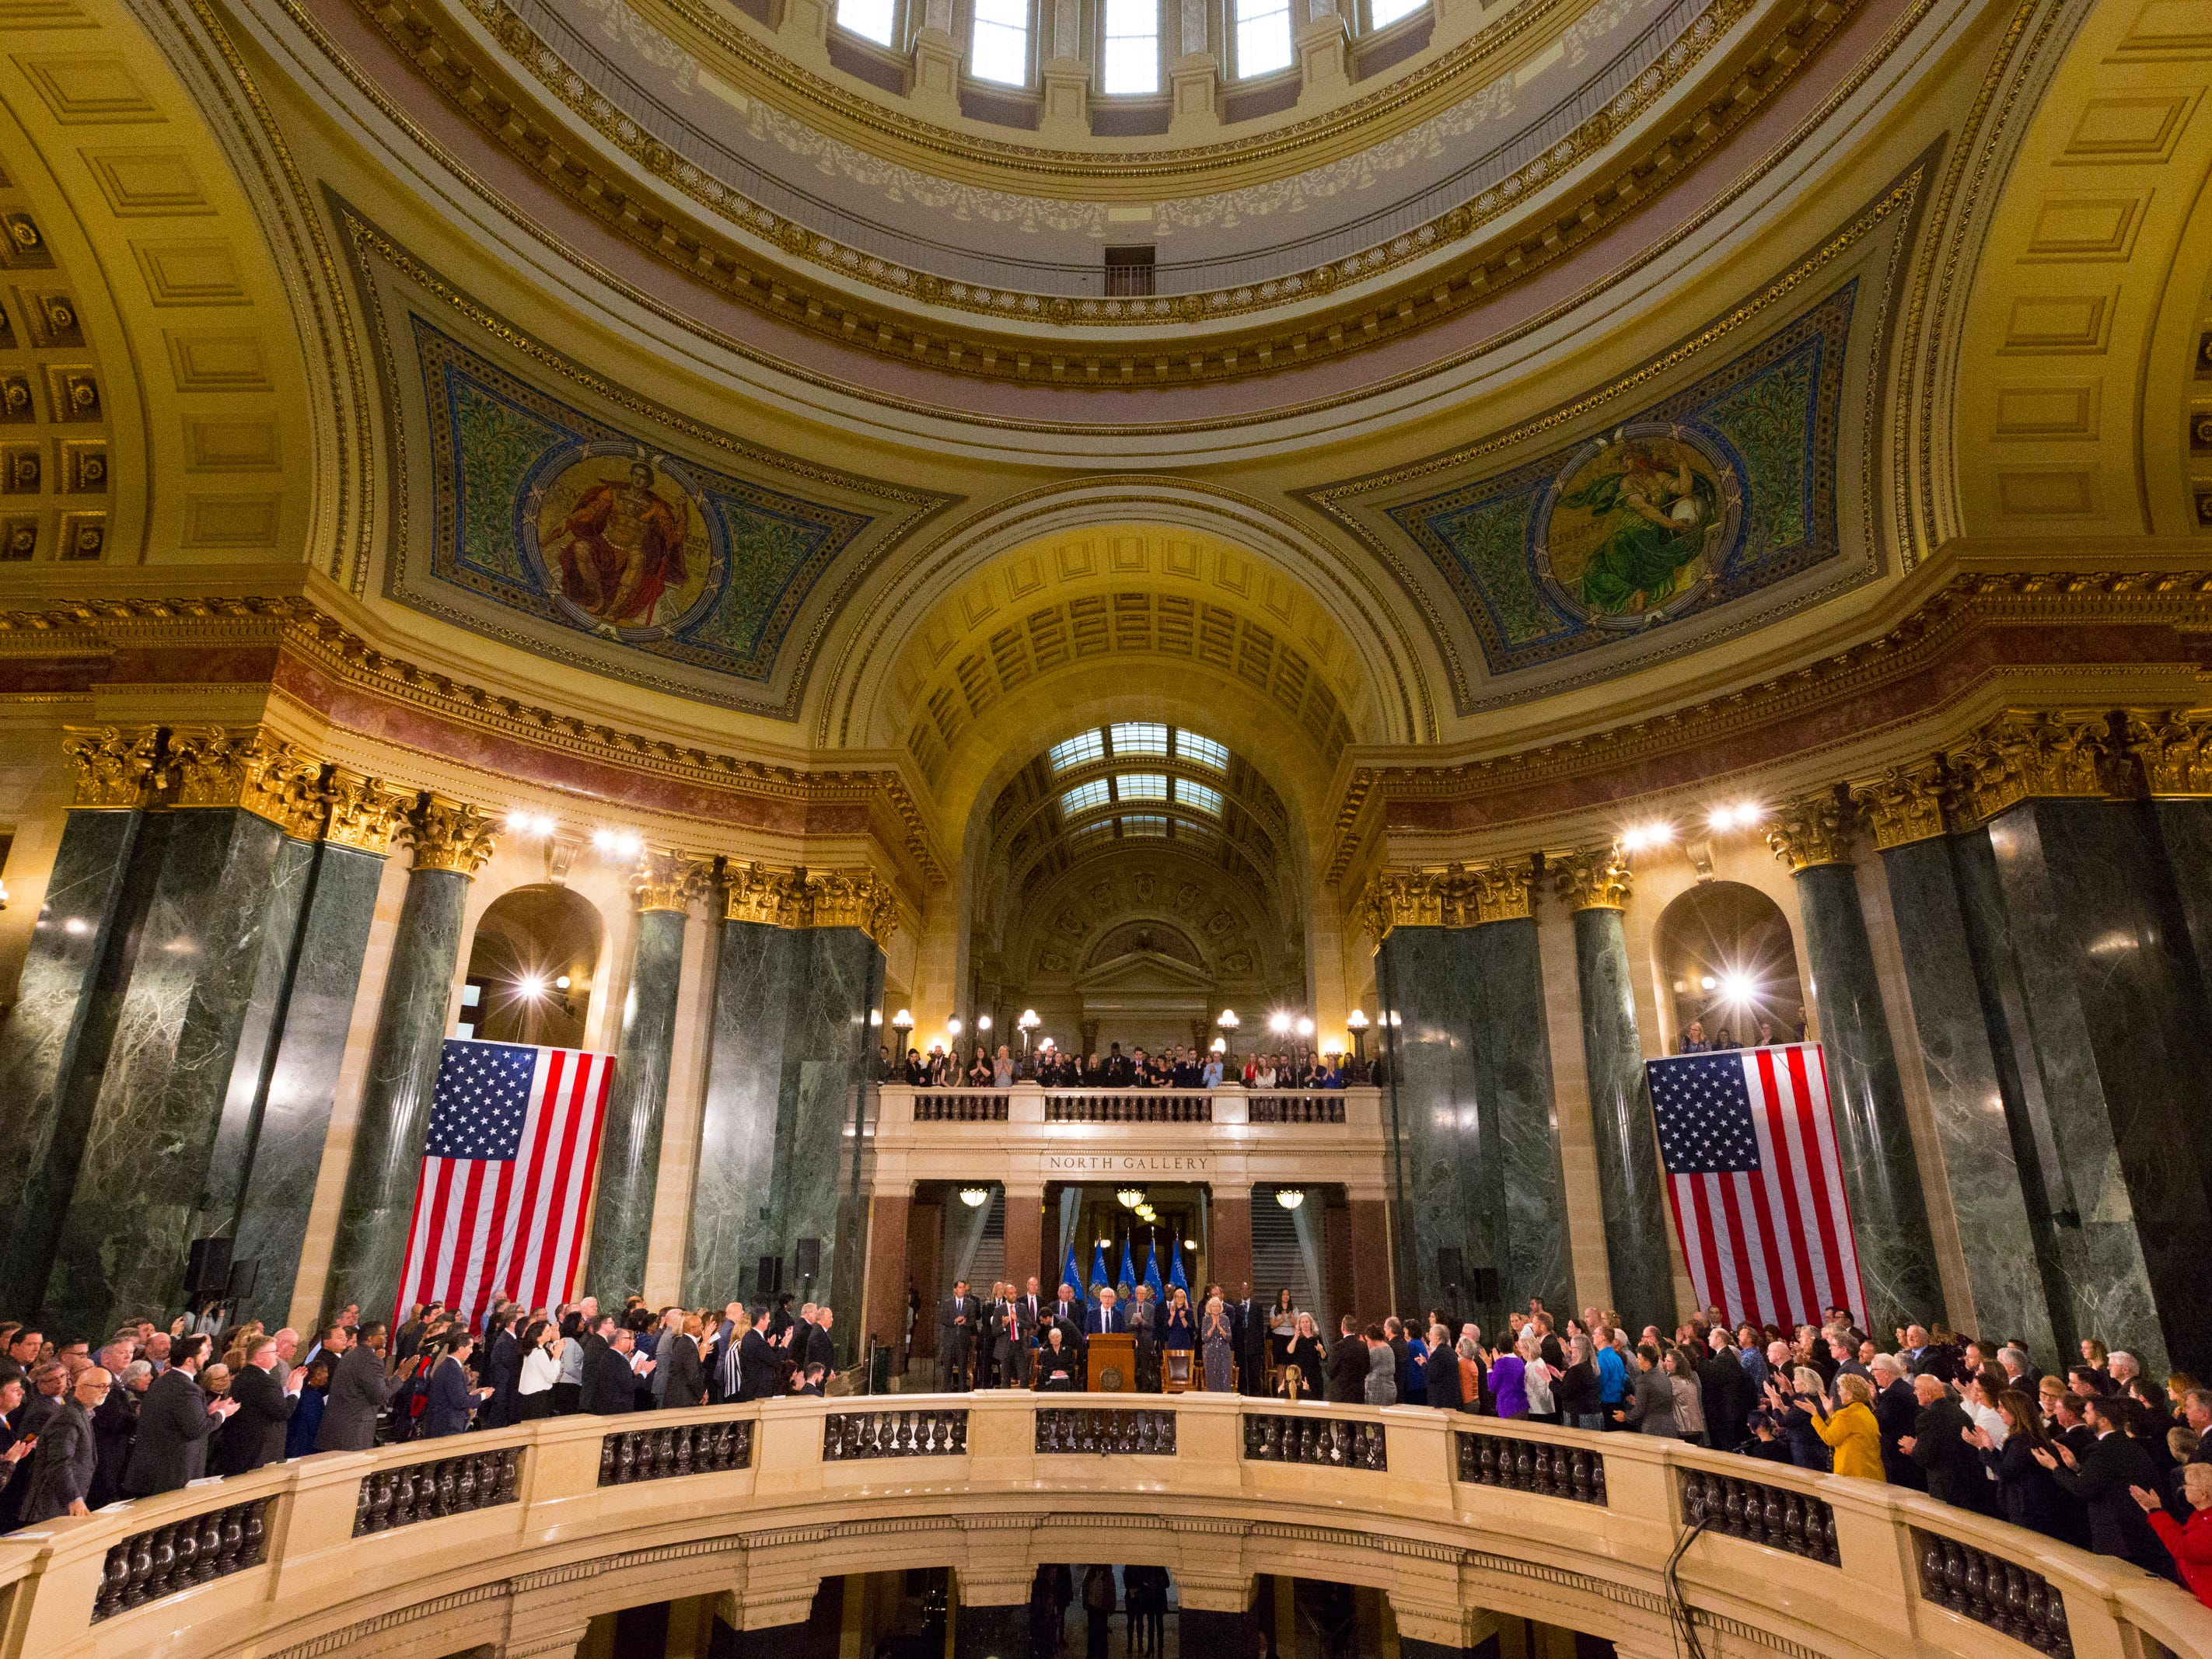 Gov. Tony Evers delivers his inaugural address at the Capitol in Madison, Wis.